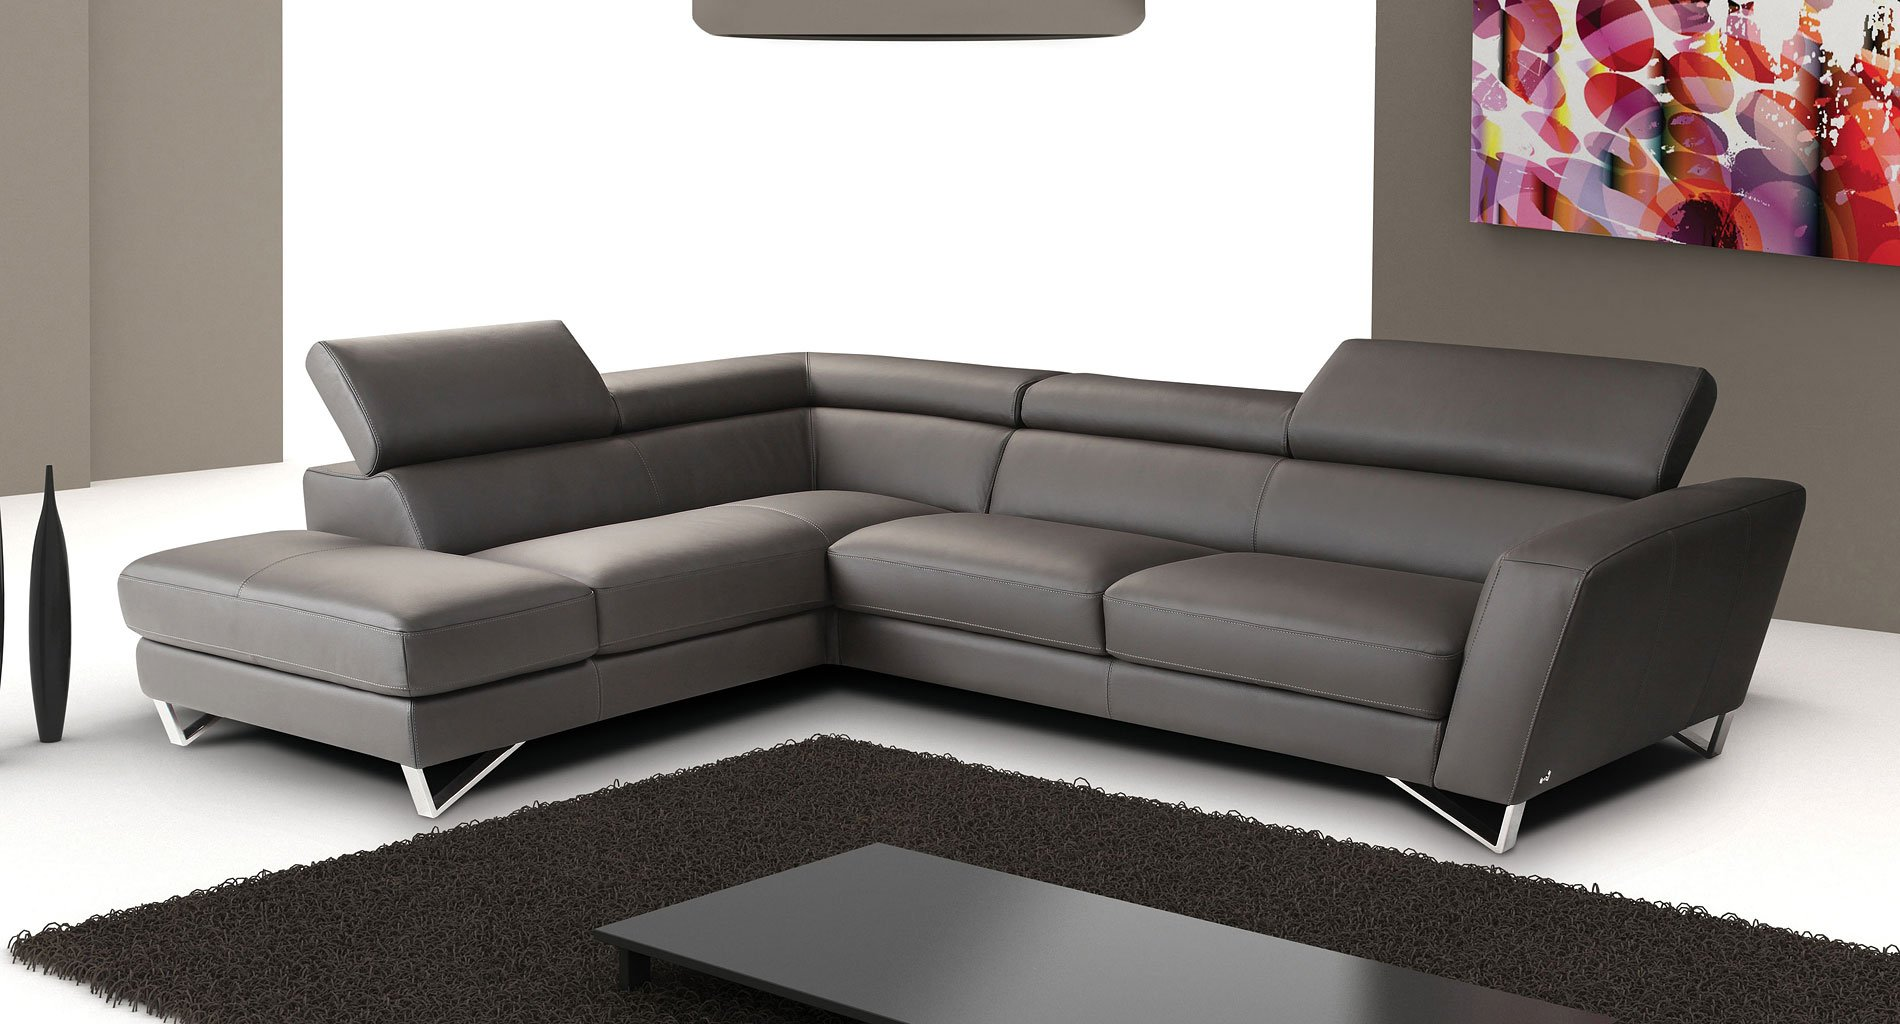 Sparta Leather Left Chaise Sectional (Gray) by JM ... on Sparta Outdoor Living id=55380